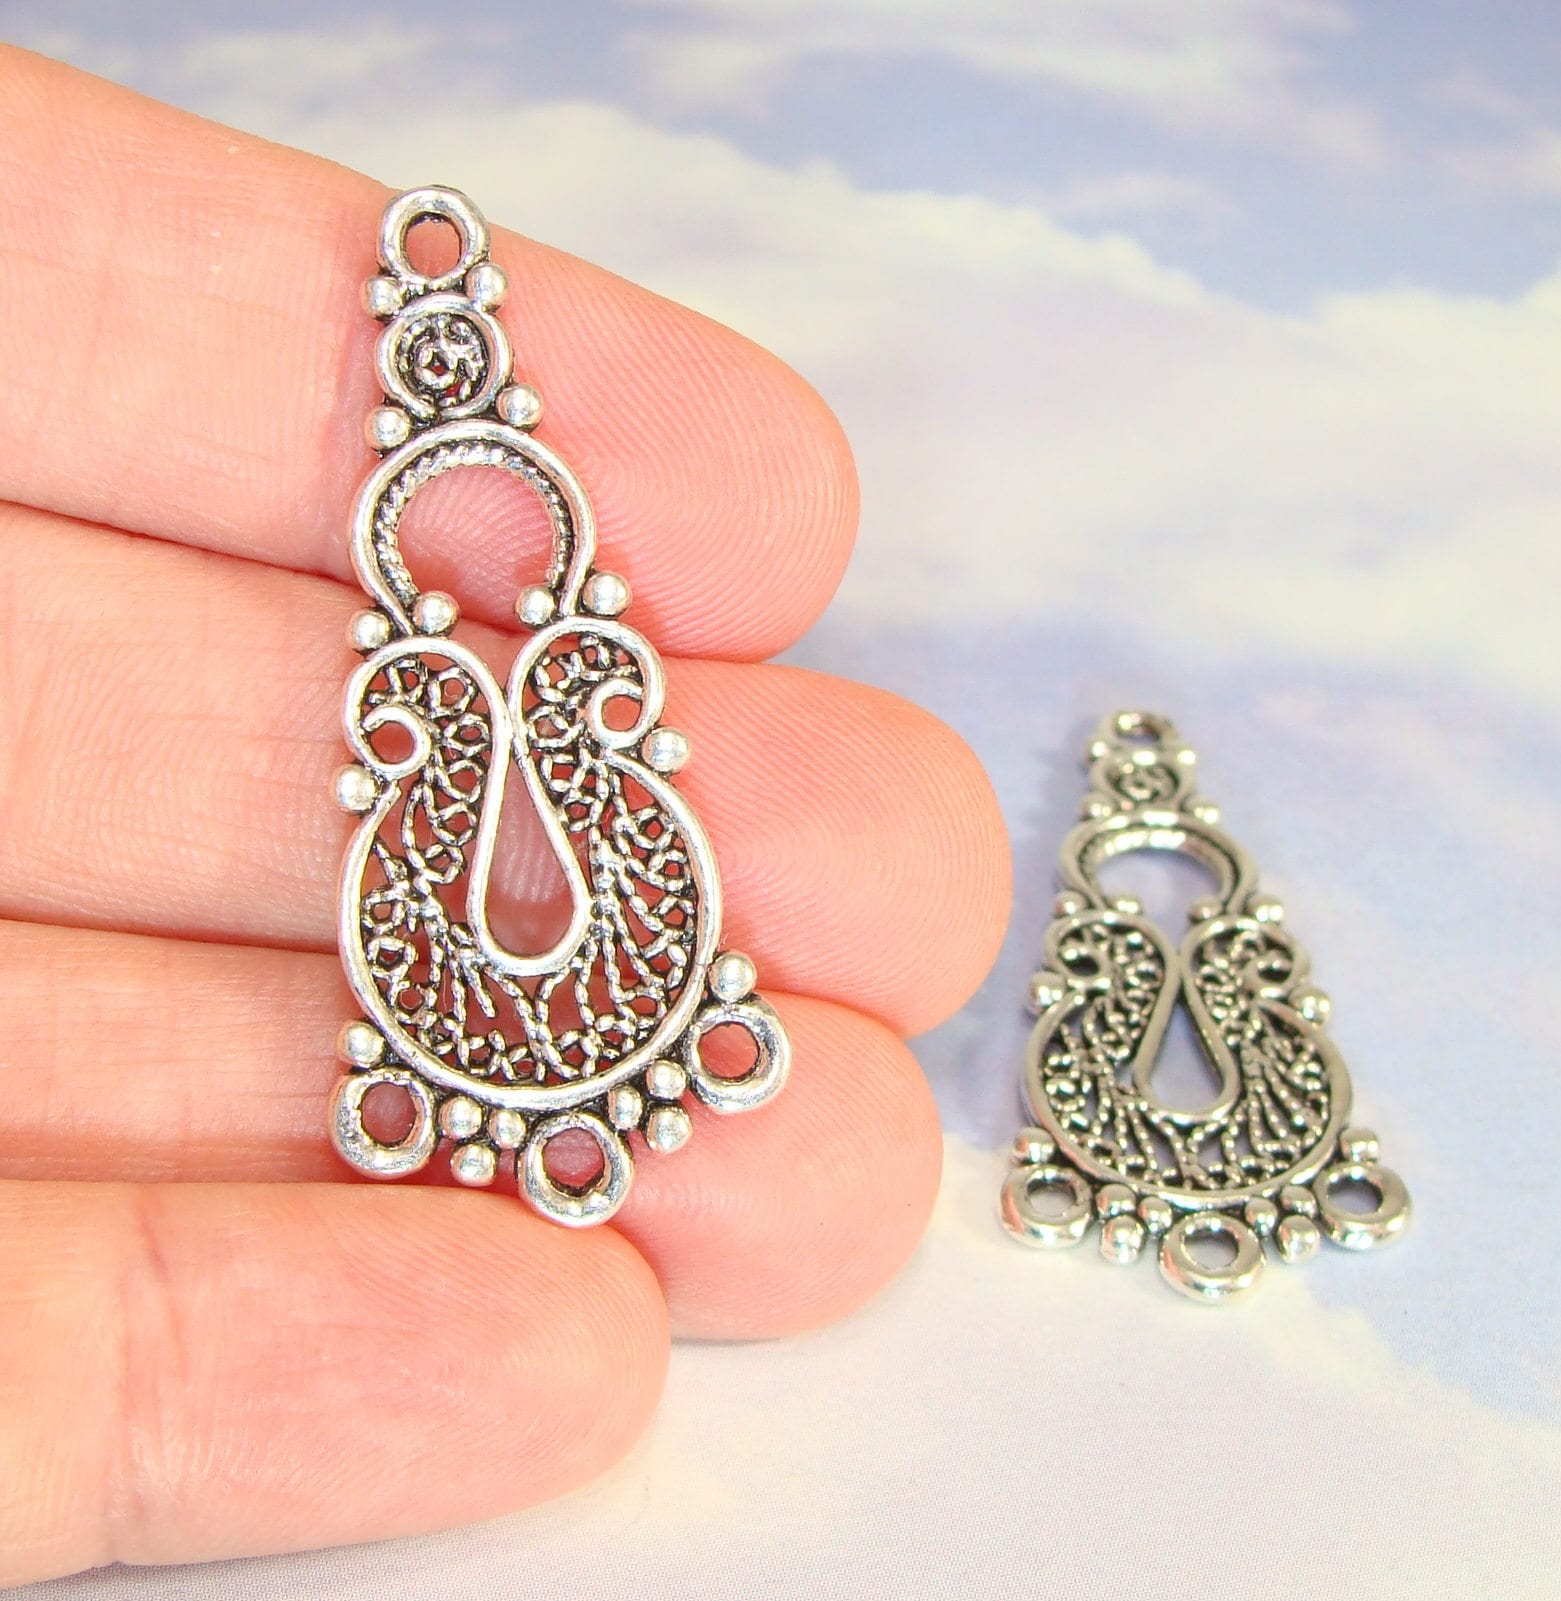 4 Chandelier Earring Parts Charms Findings Connector Components 2 ...